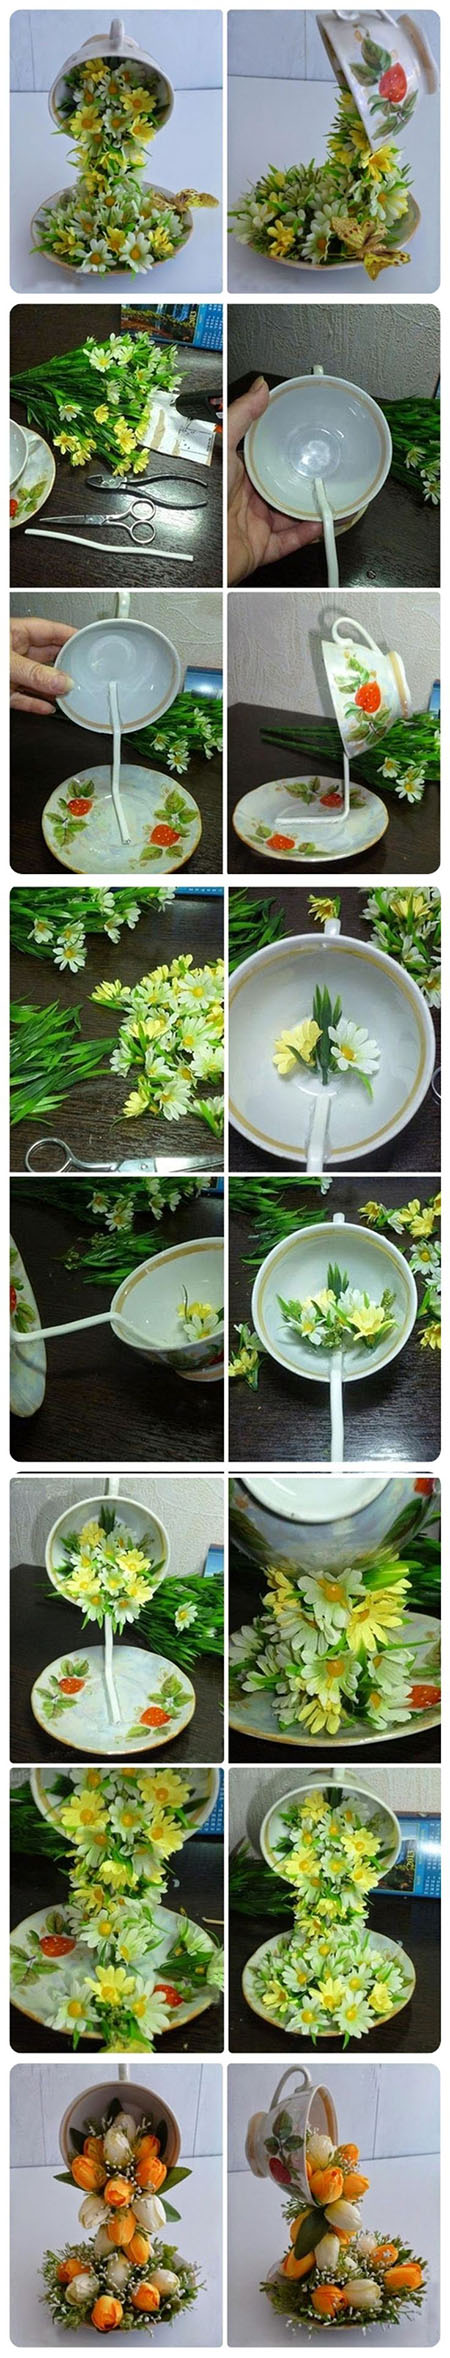 10  DIY Topiary Flower Flying Cup Decorationse25a03